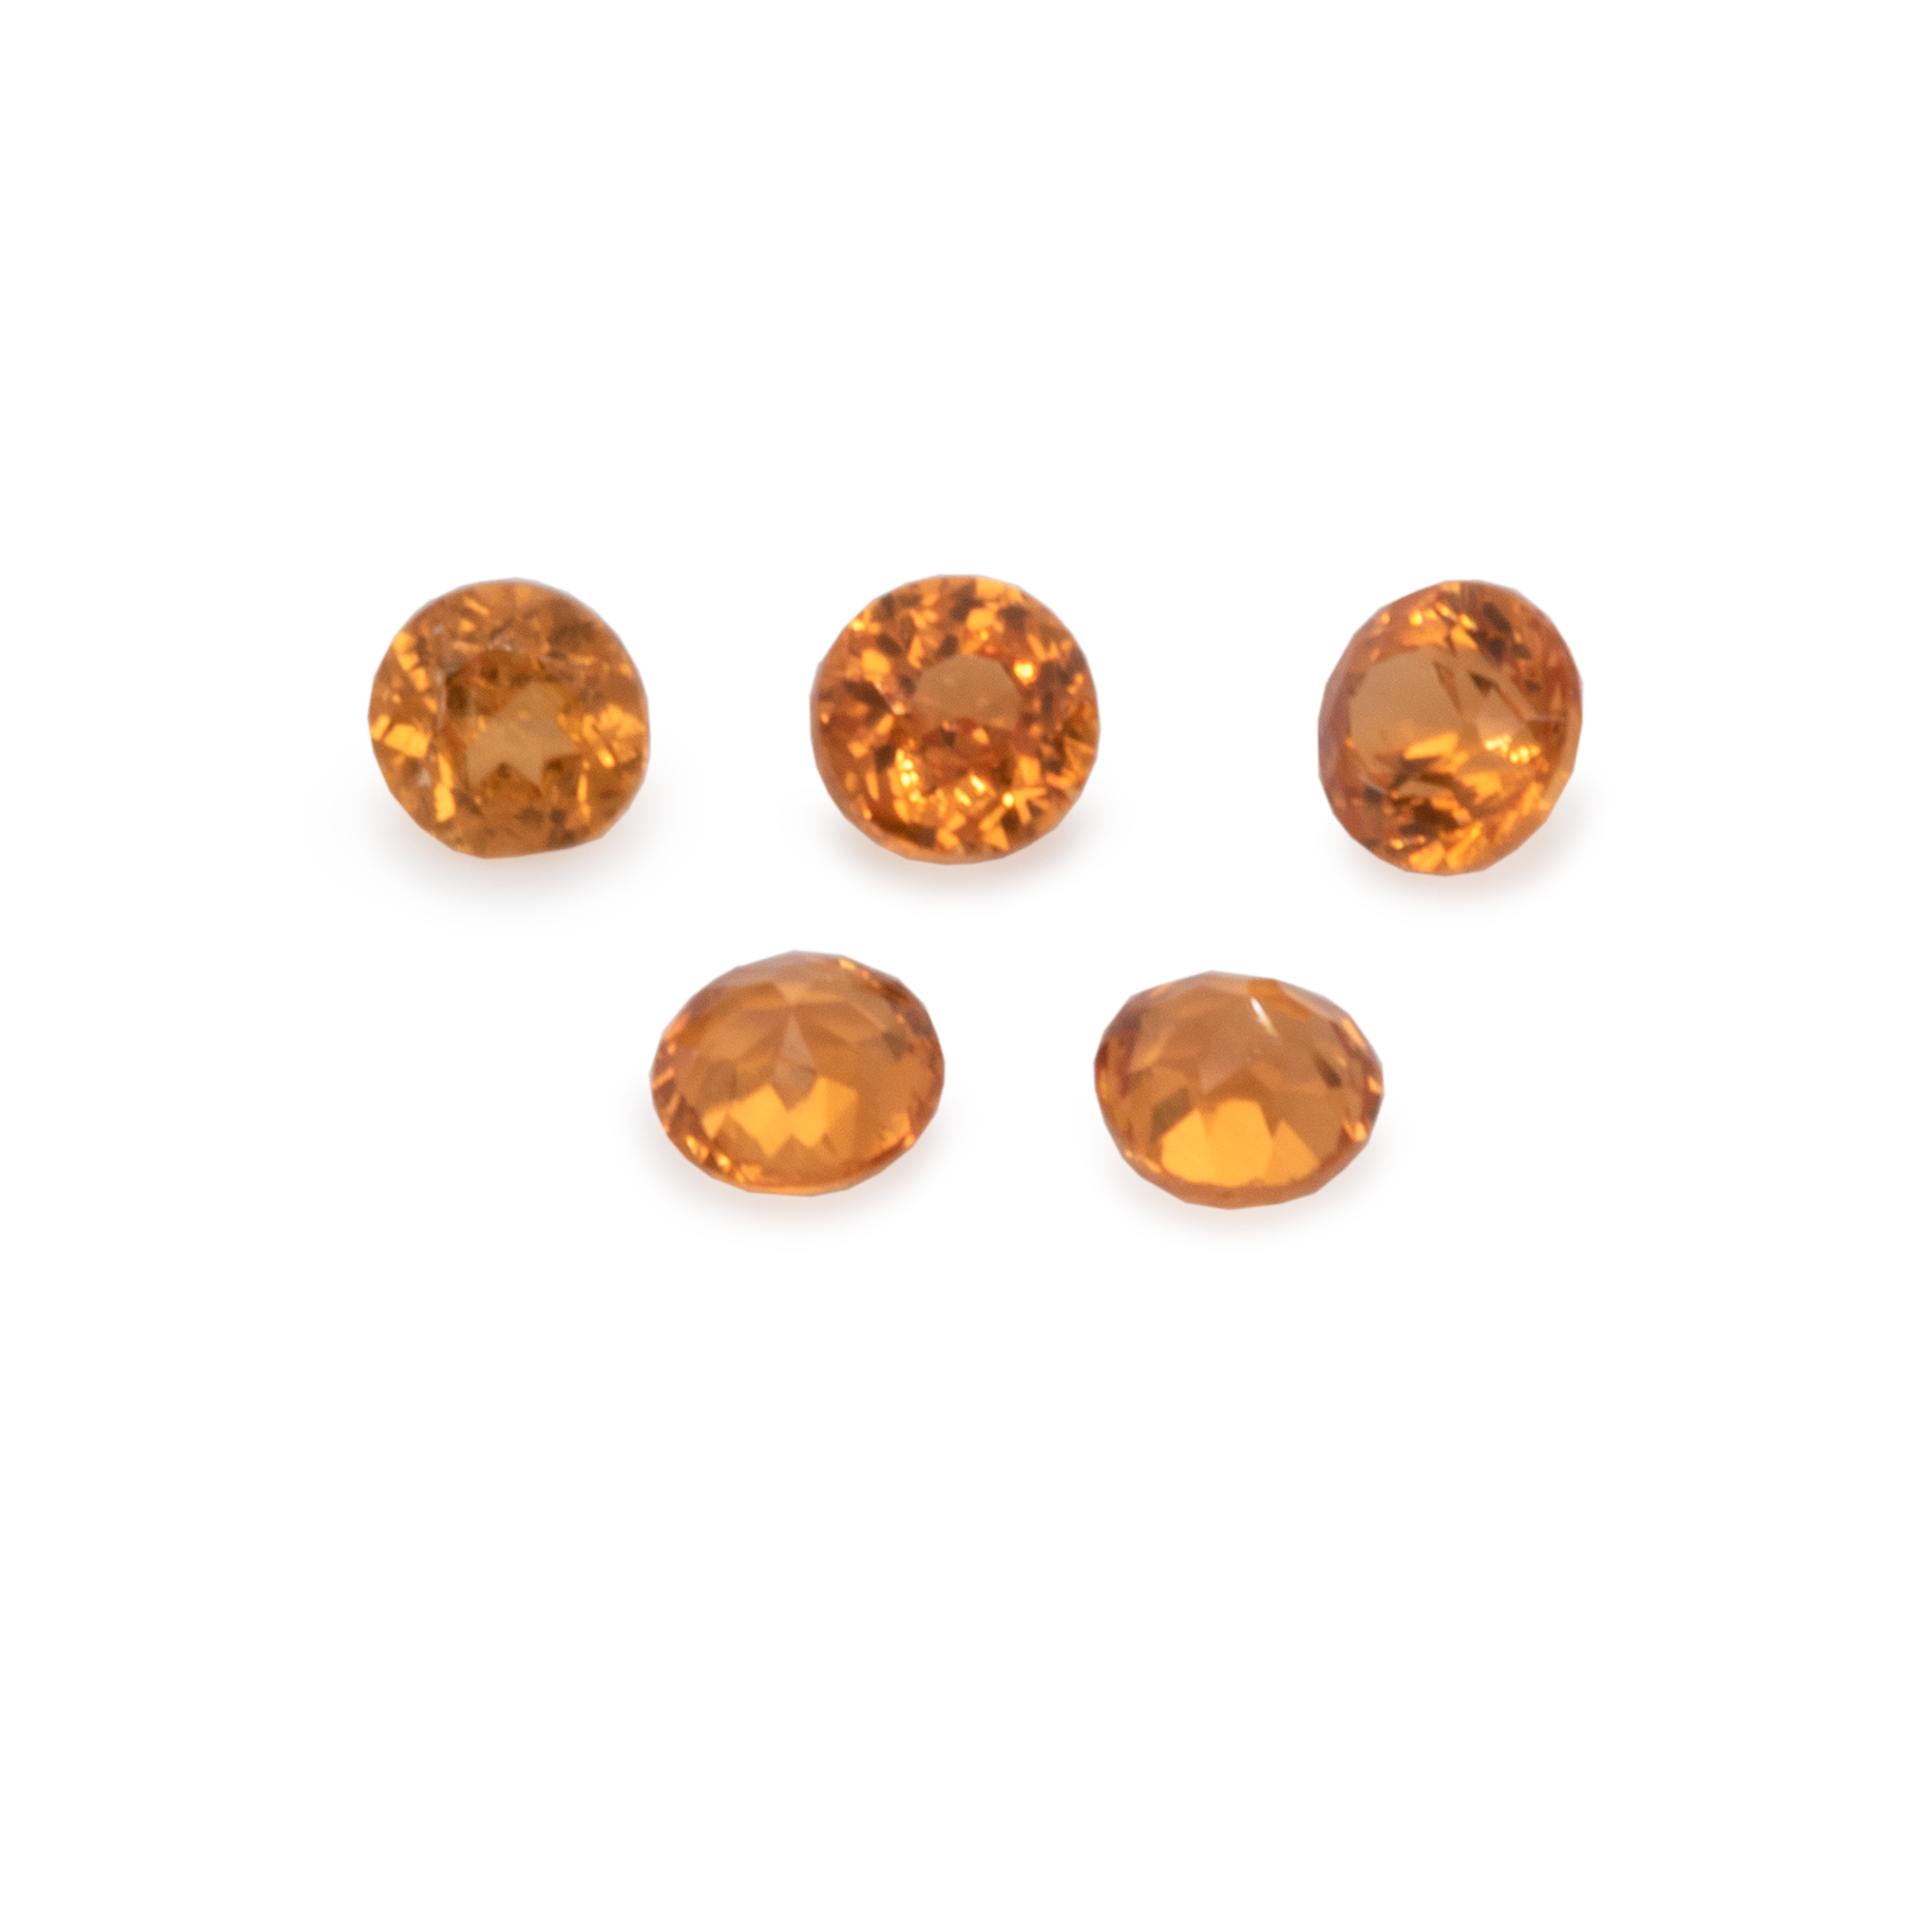 Mandarin Garnet - hell orange, rund, 1,5x1,5 mm, 0,02-0,03 cts, Nr. MG28002